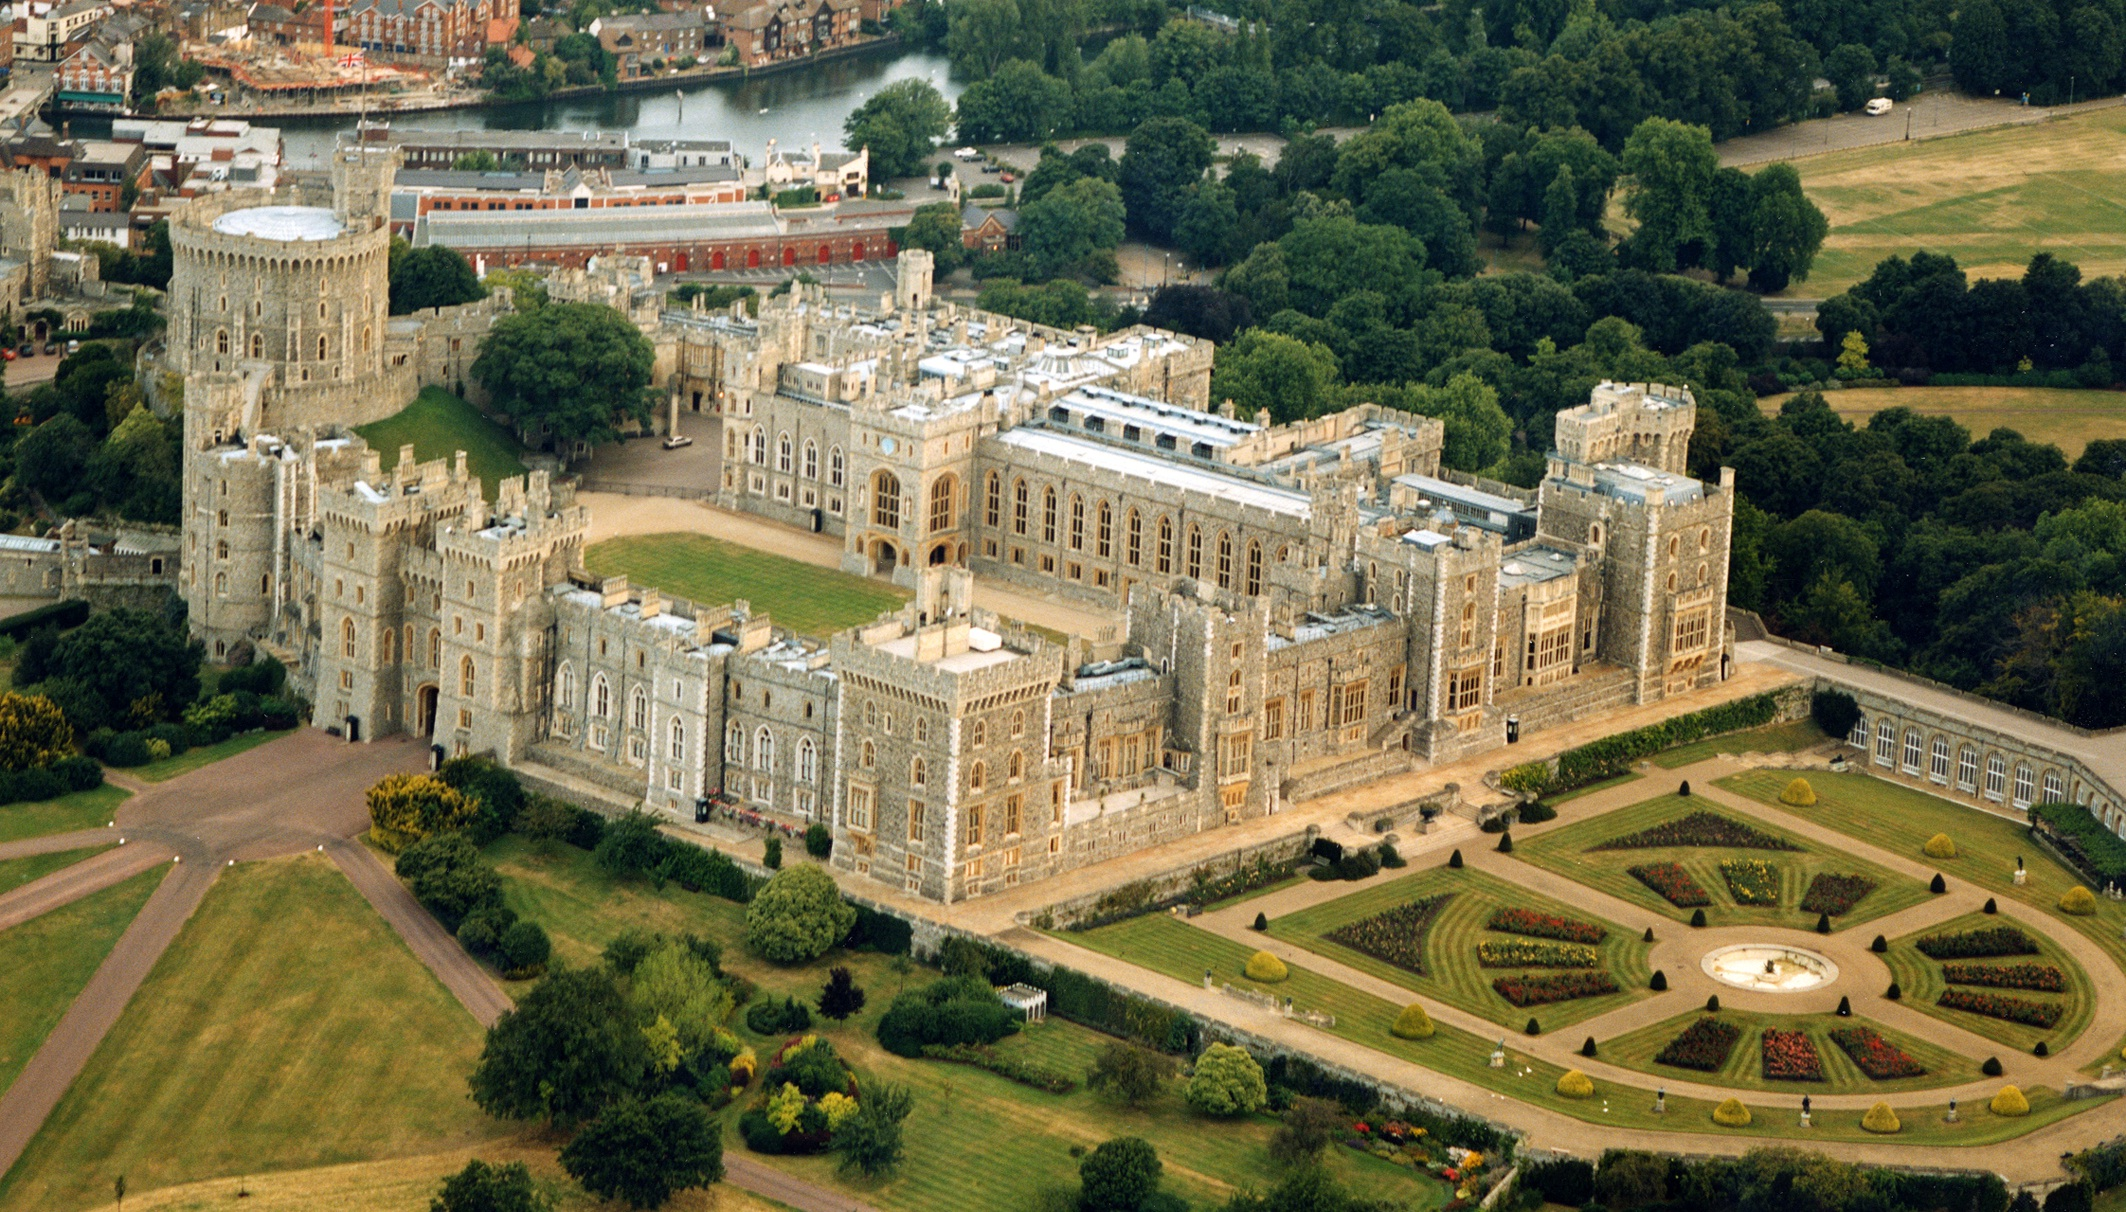 Windsor Castle, Berkshire